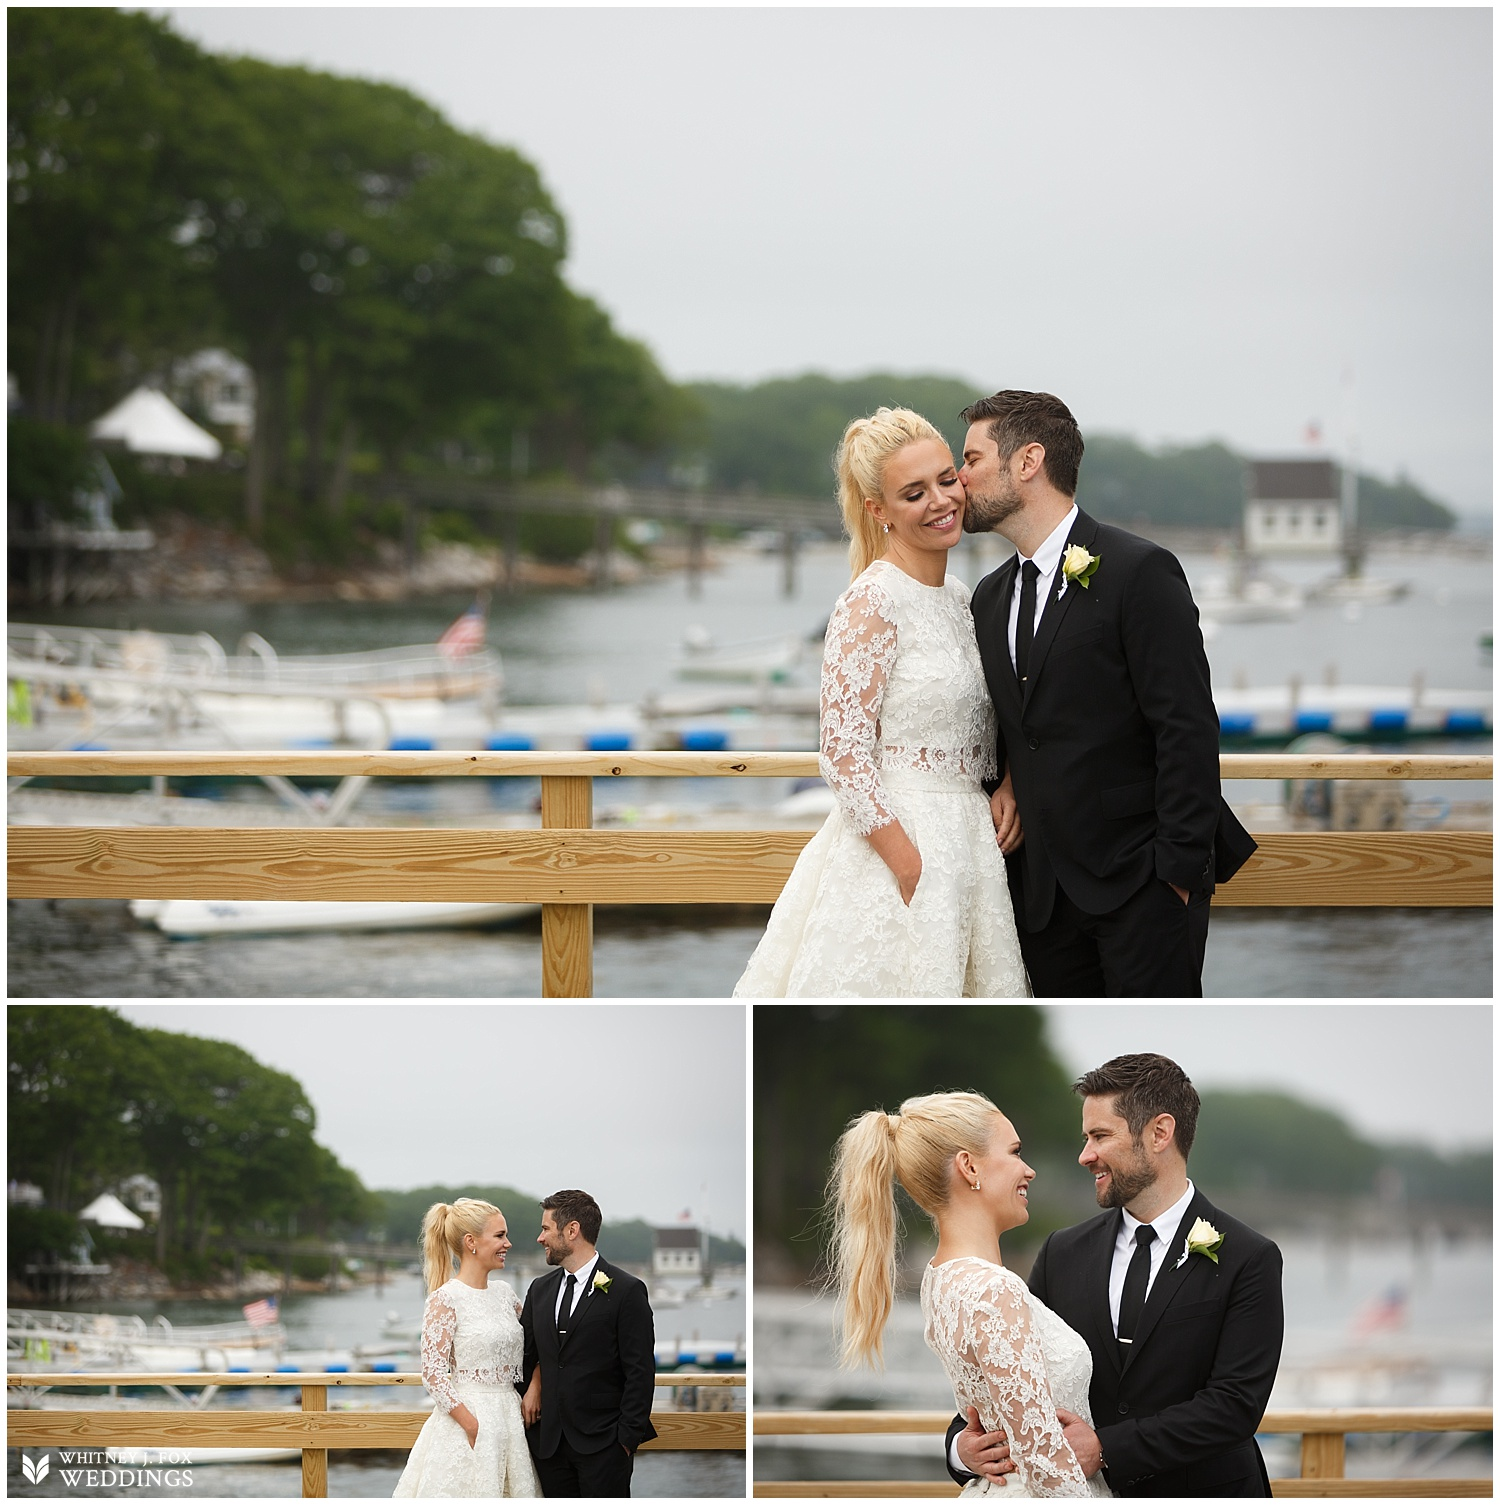 formal_seaside_summer_wedding_dockside_grill_falmouth_maine_photographer_whitney_j_fox_weddings_52.JPG